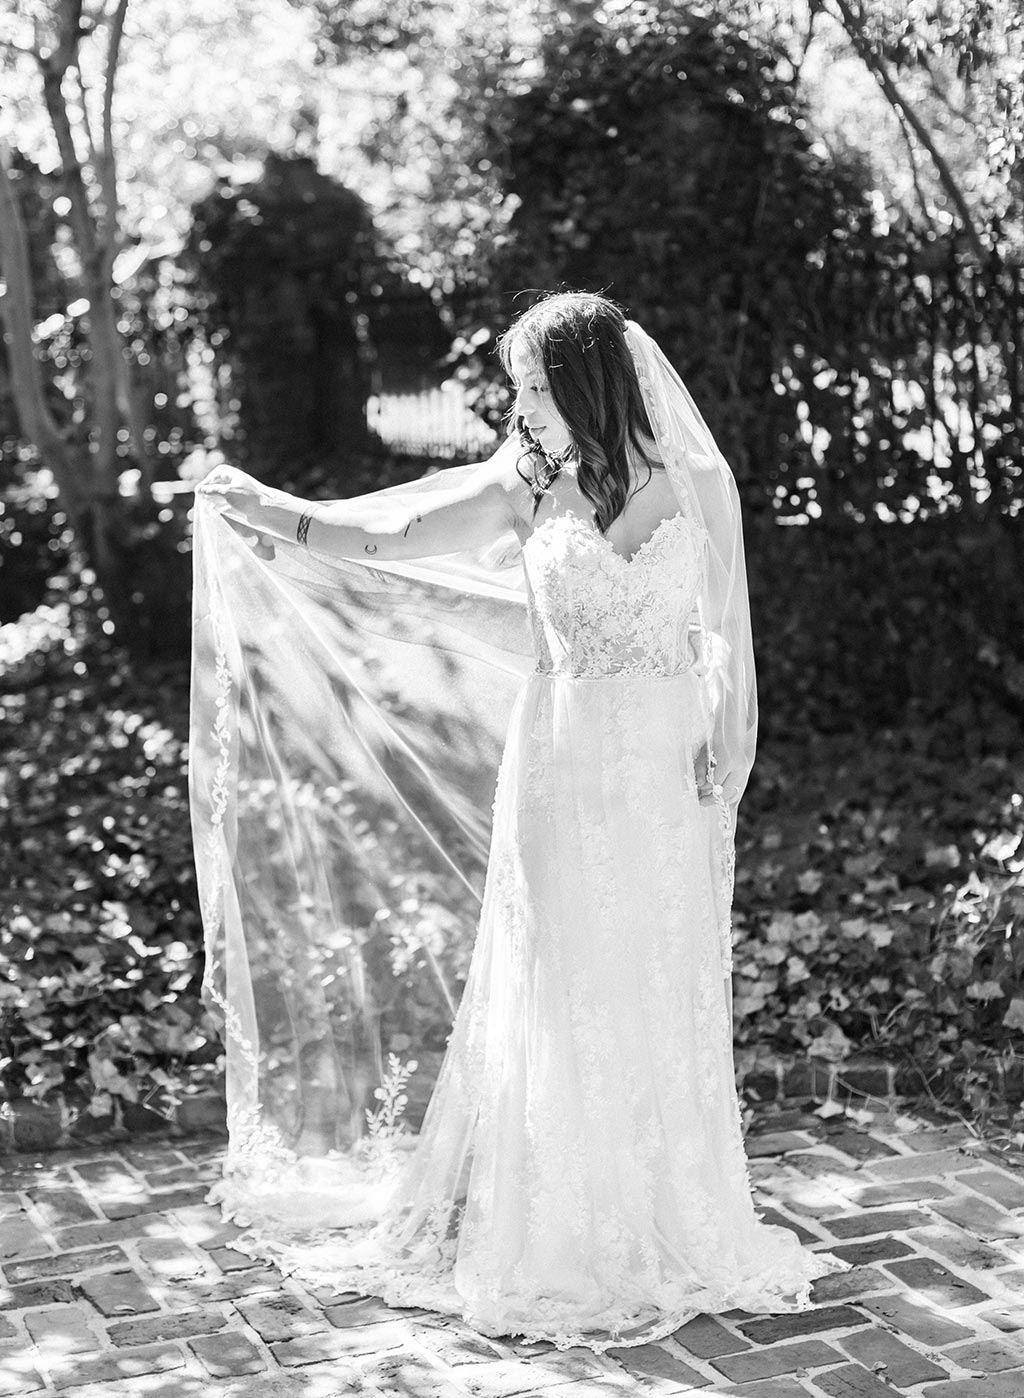 Wedding Dress and Wedding Veil